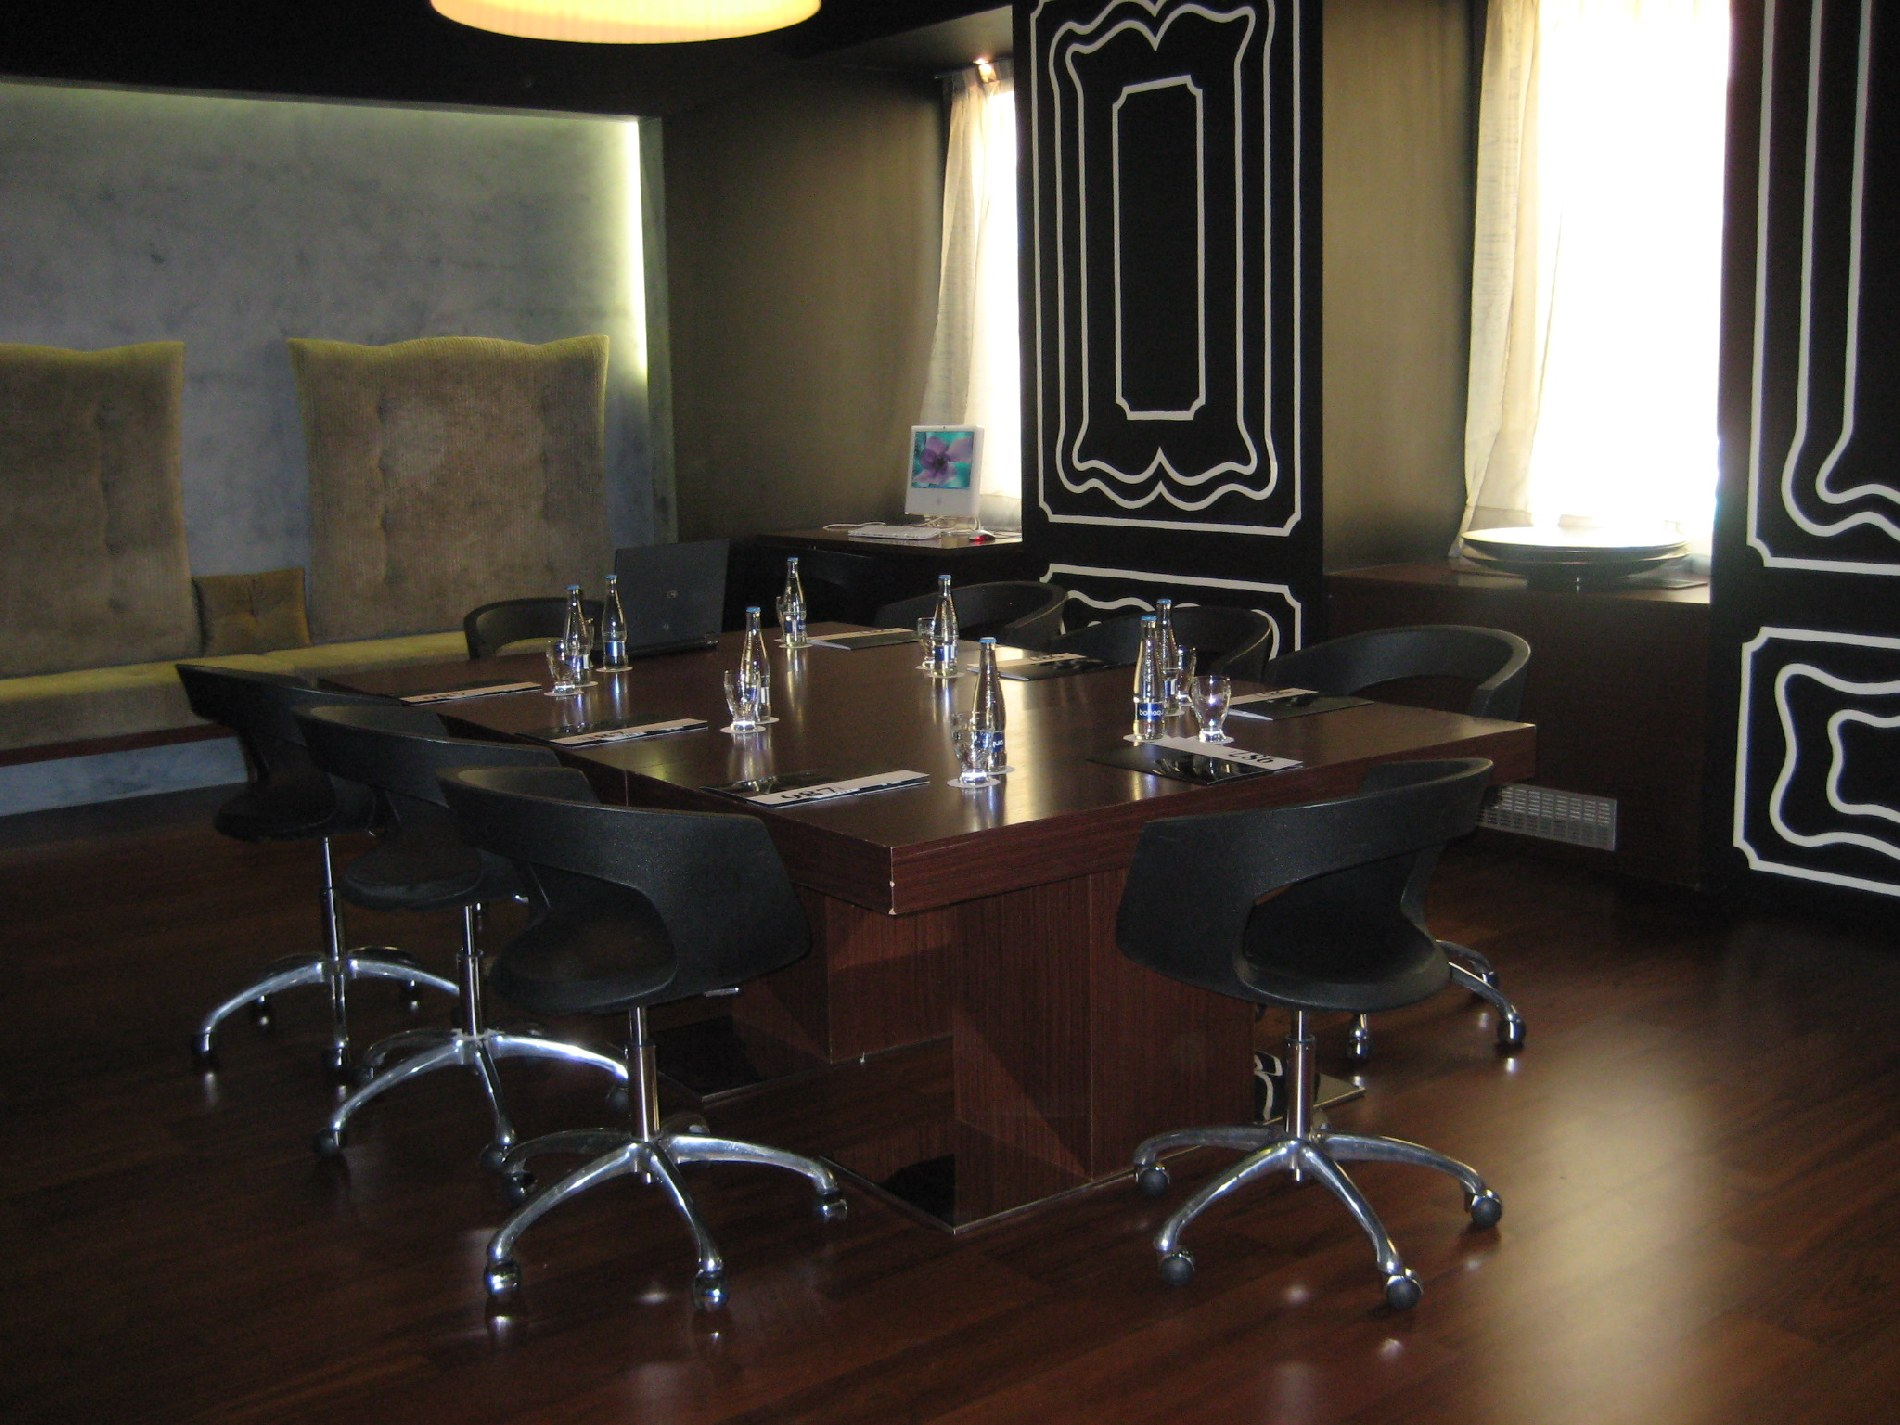 Meeting rooms 987 design prague hotel for your event in for 987 design hotel prague booking